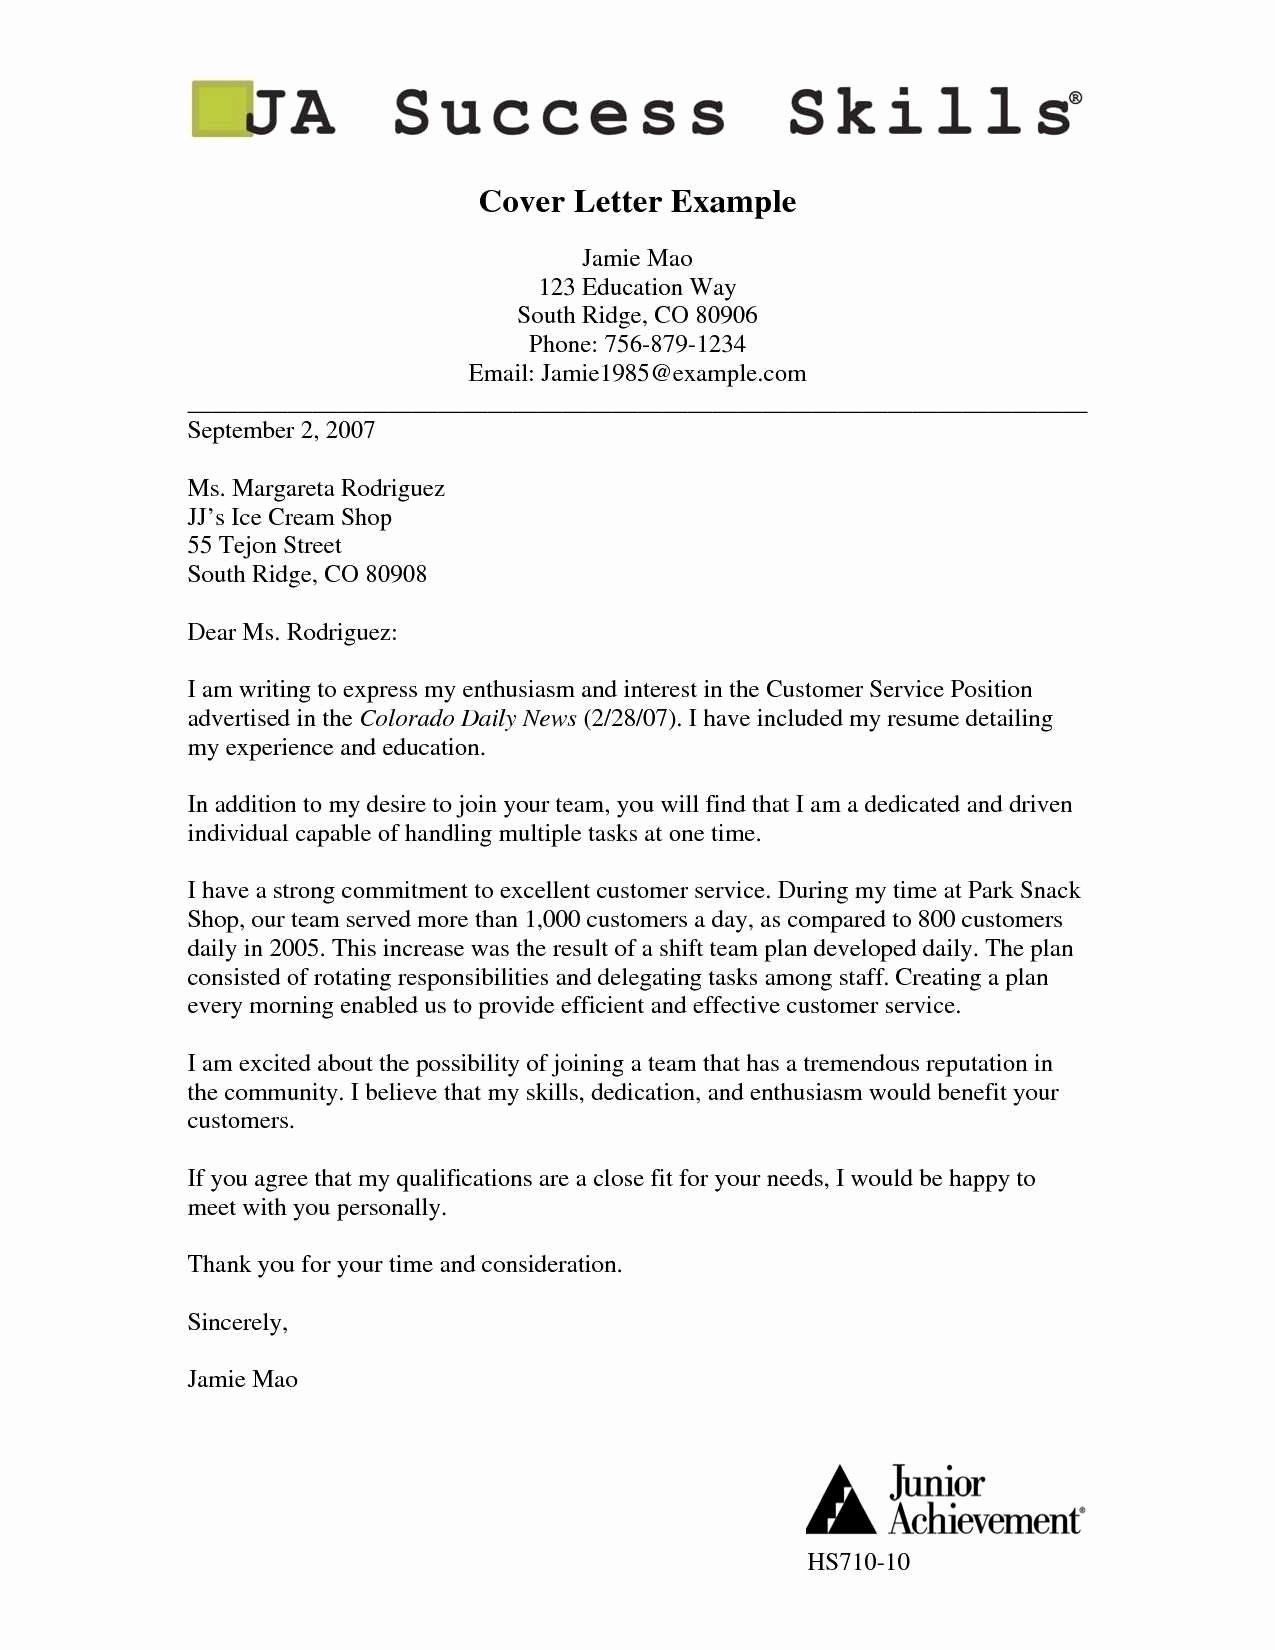 Cover Letter for Job Change Awesome 10 11 Staff Accountant Cover Letter Samples